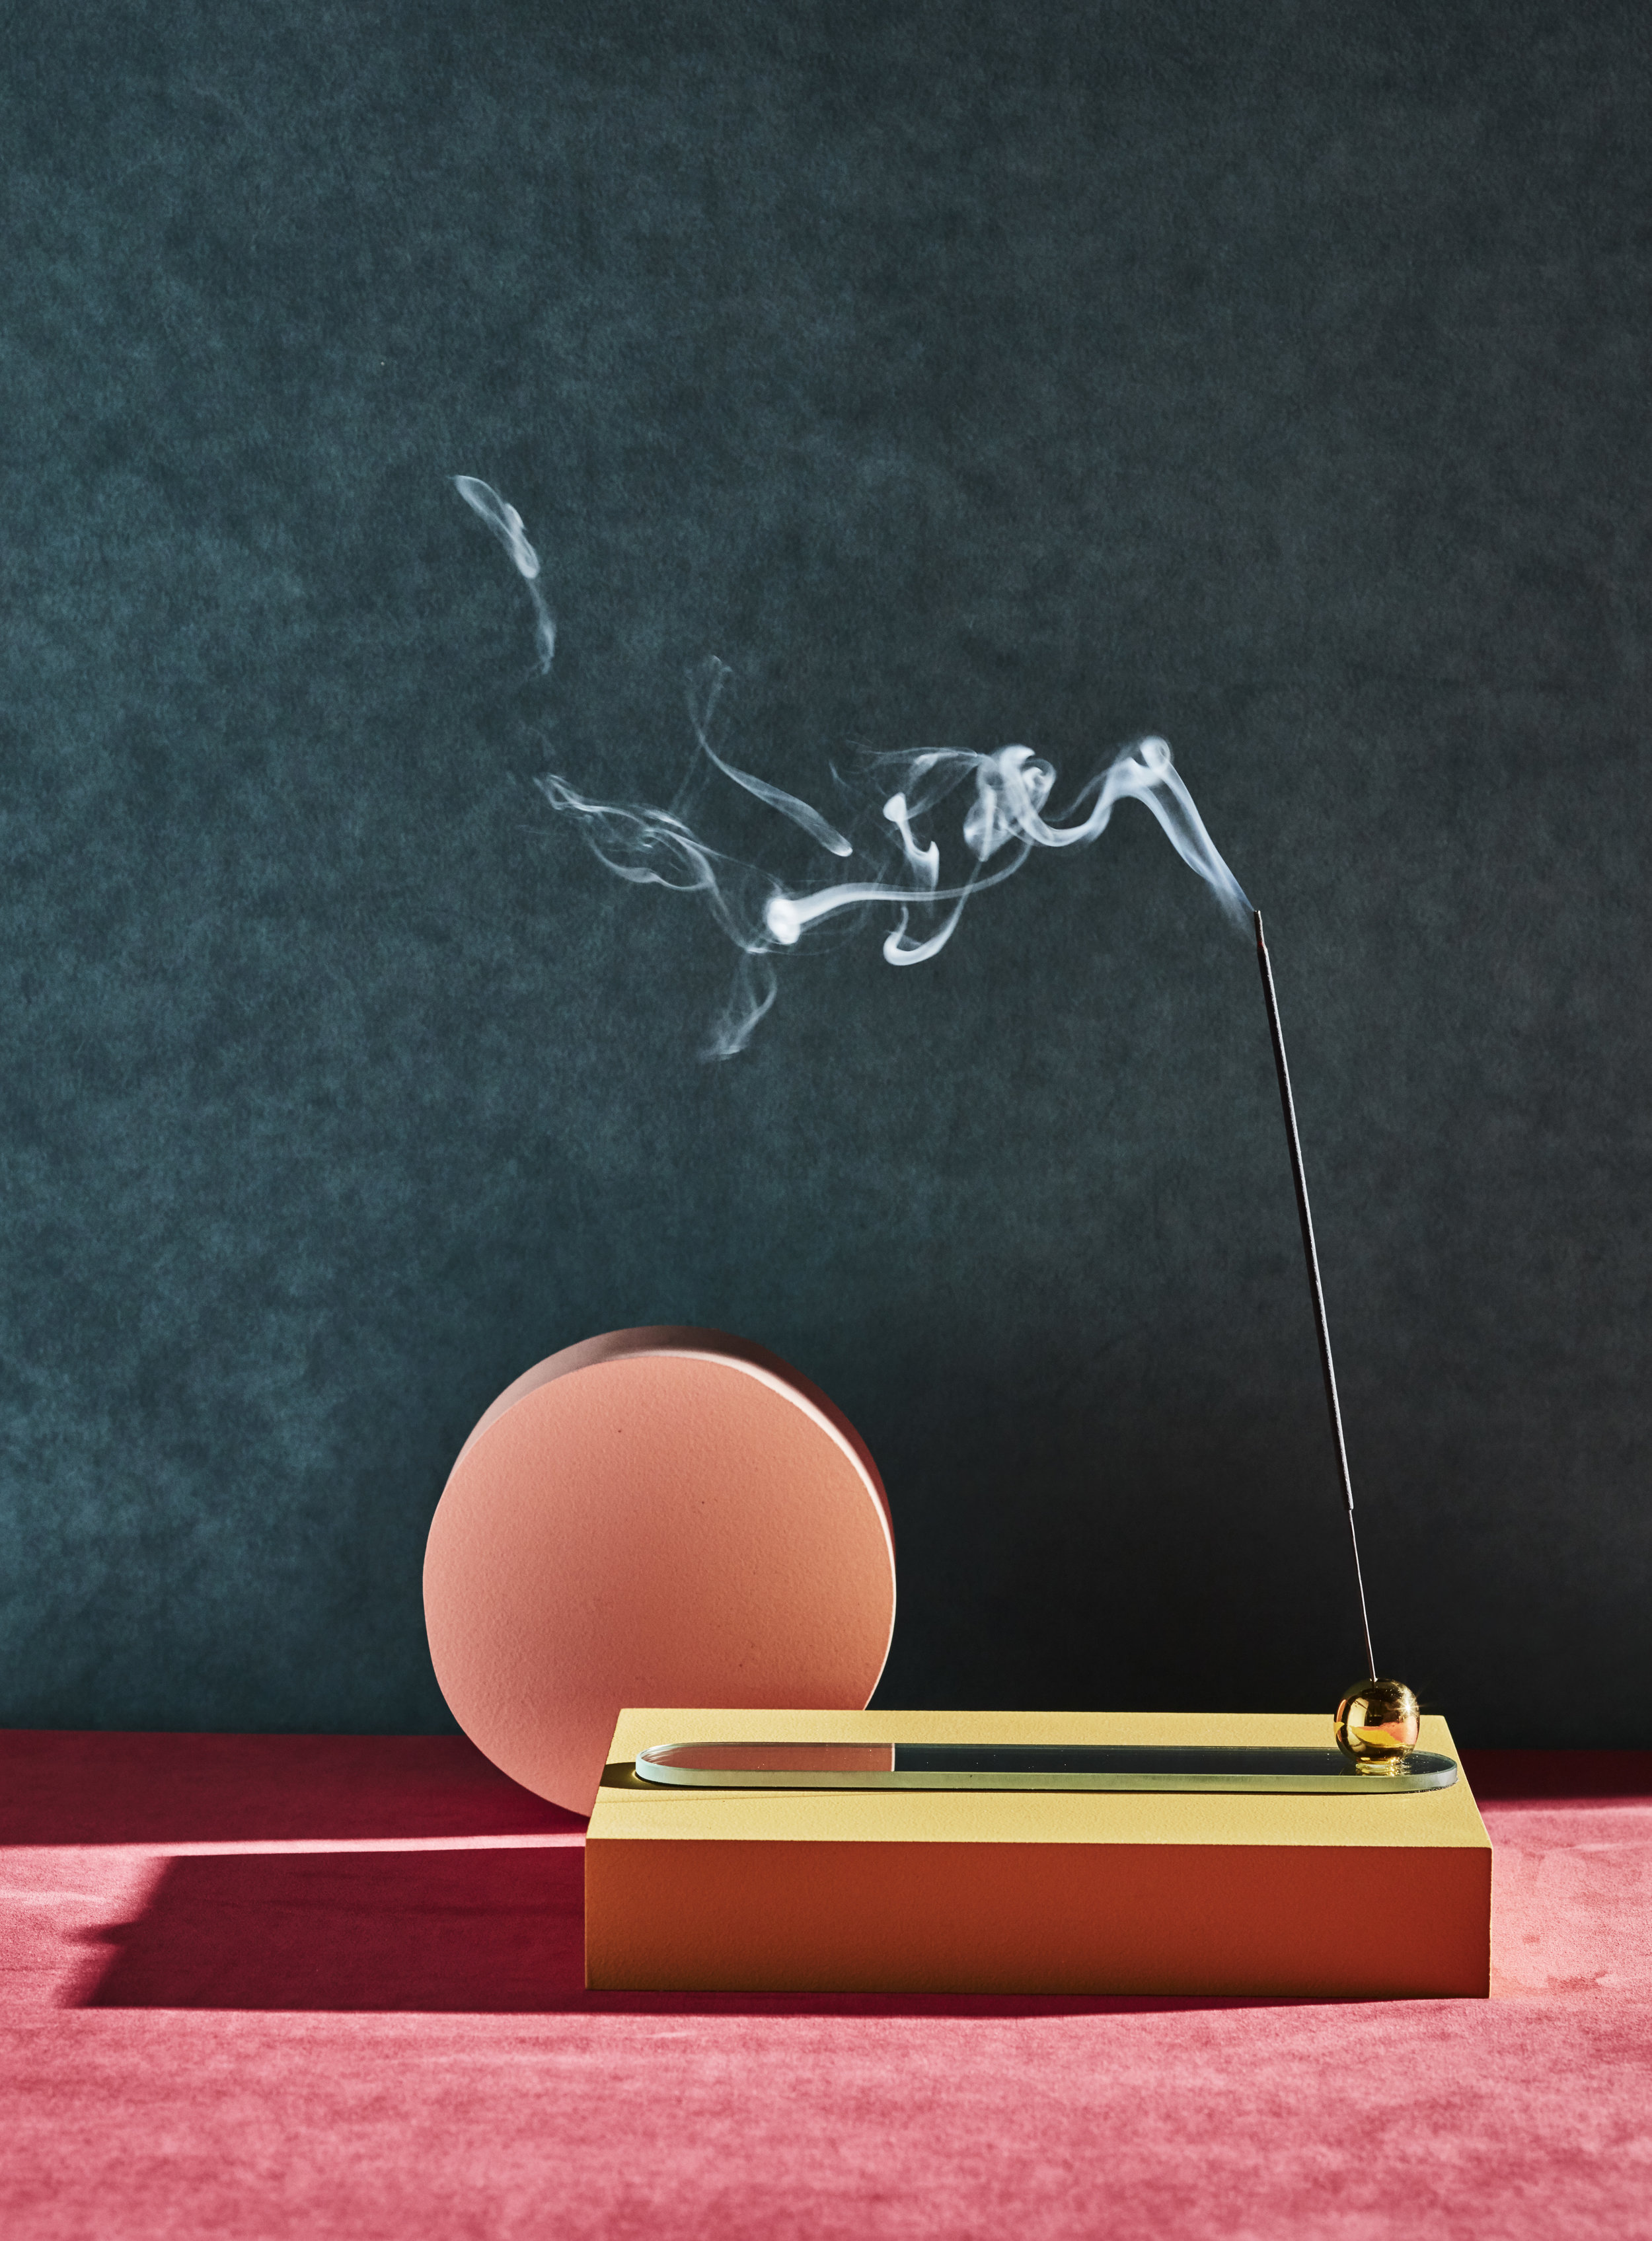 c5-canvas-incense-holder-HL18_094.jpg